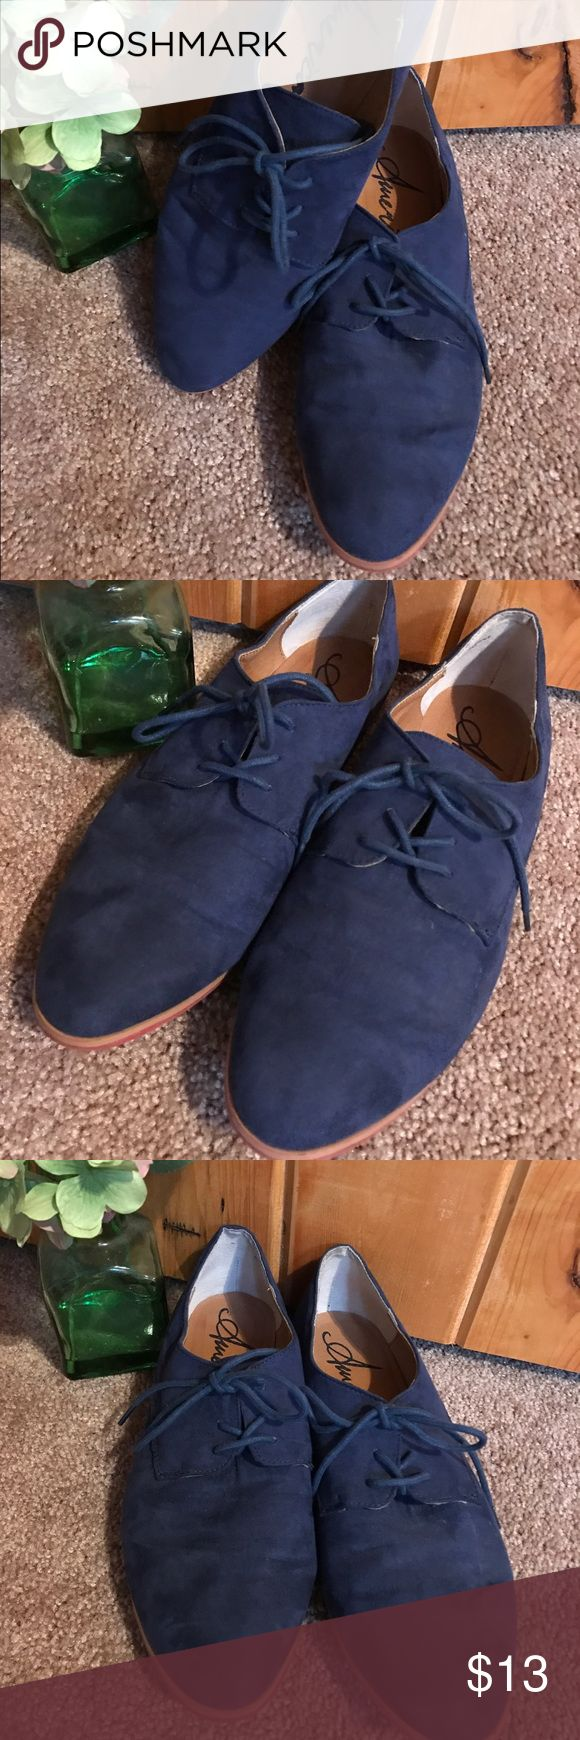 American rag size 10 blue suede oxfords. Blue suede oxfords size 10. Given to me by a friend, not my size so need to find them a new home. Pre owned but still in great condition. American Rag Shoes Flats & Loafers